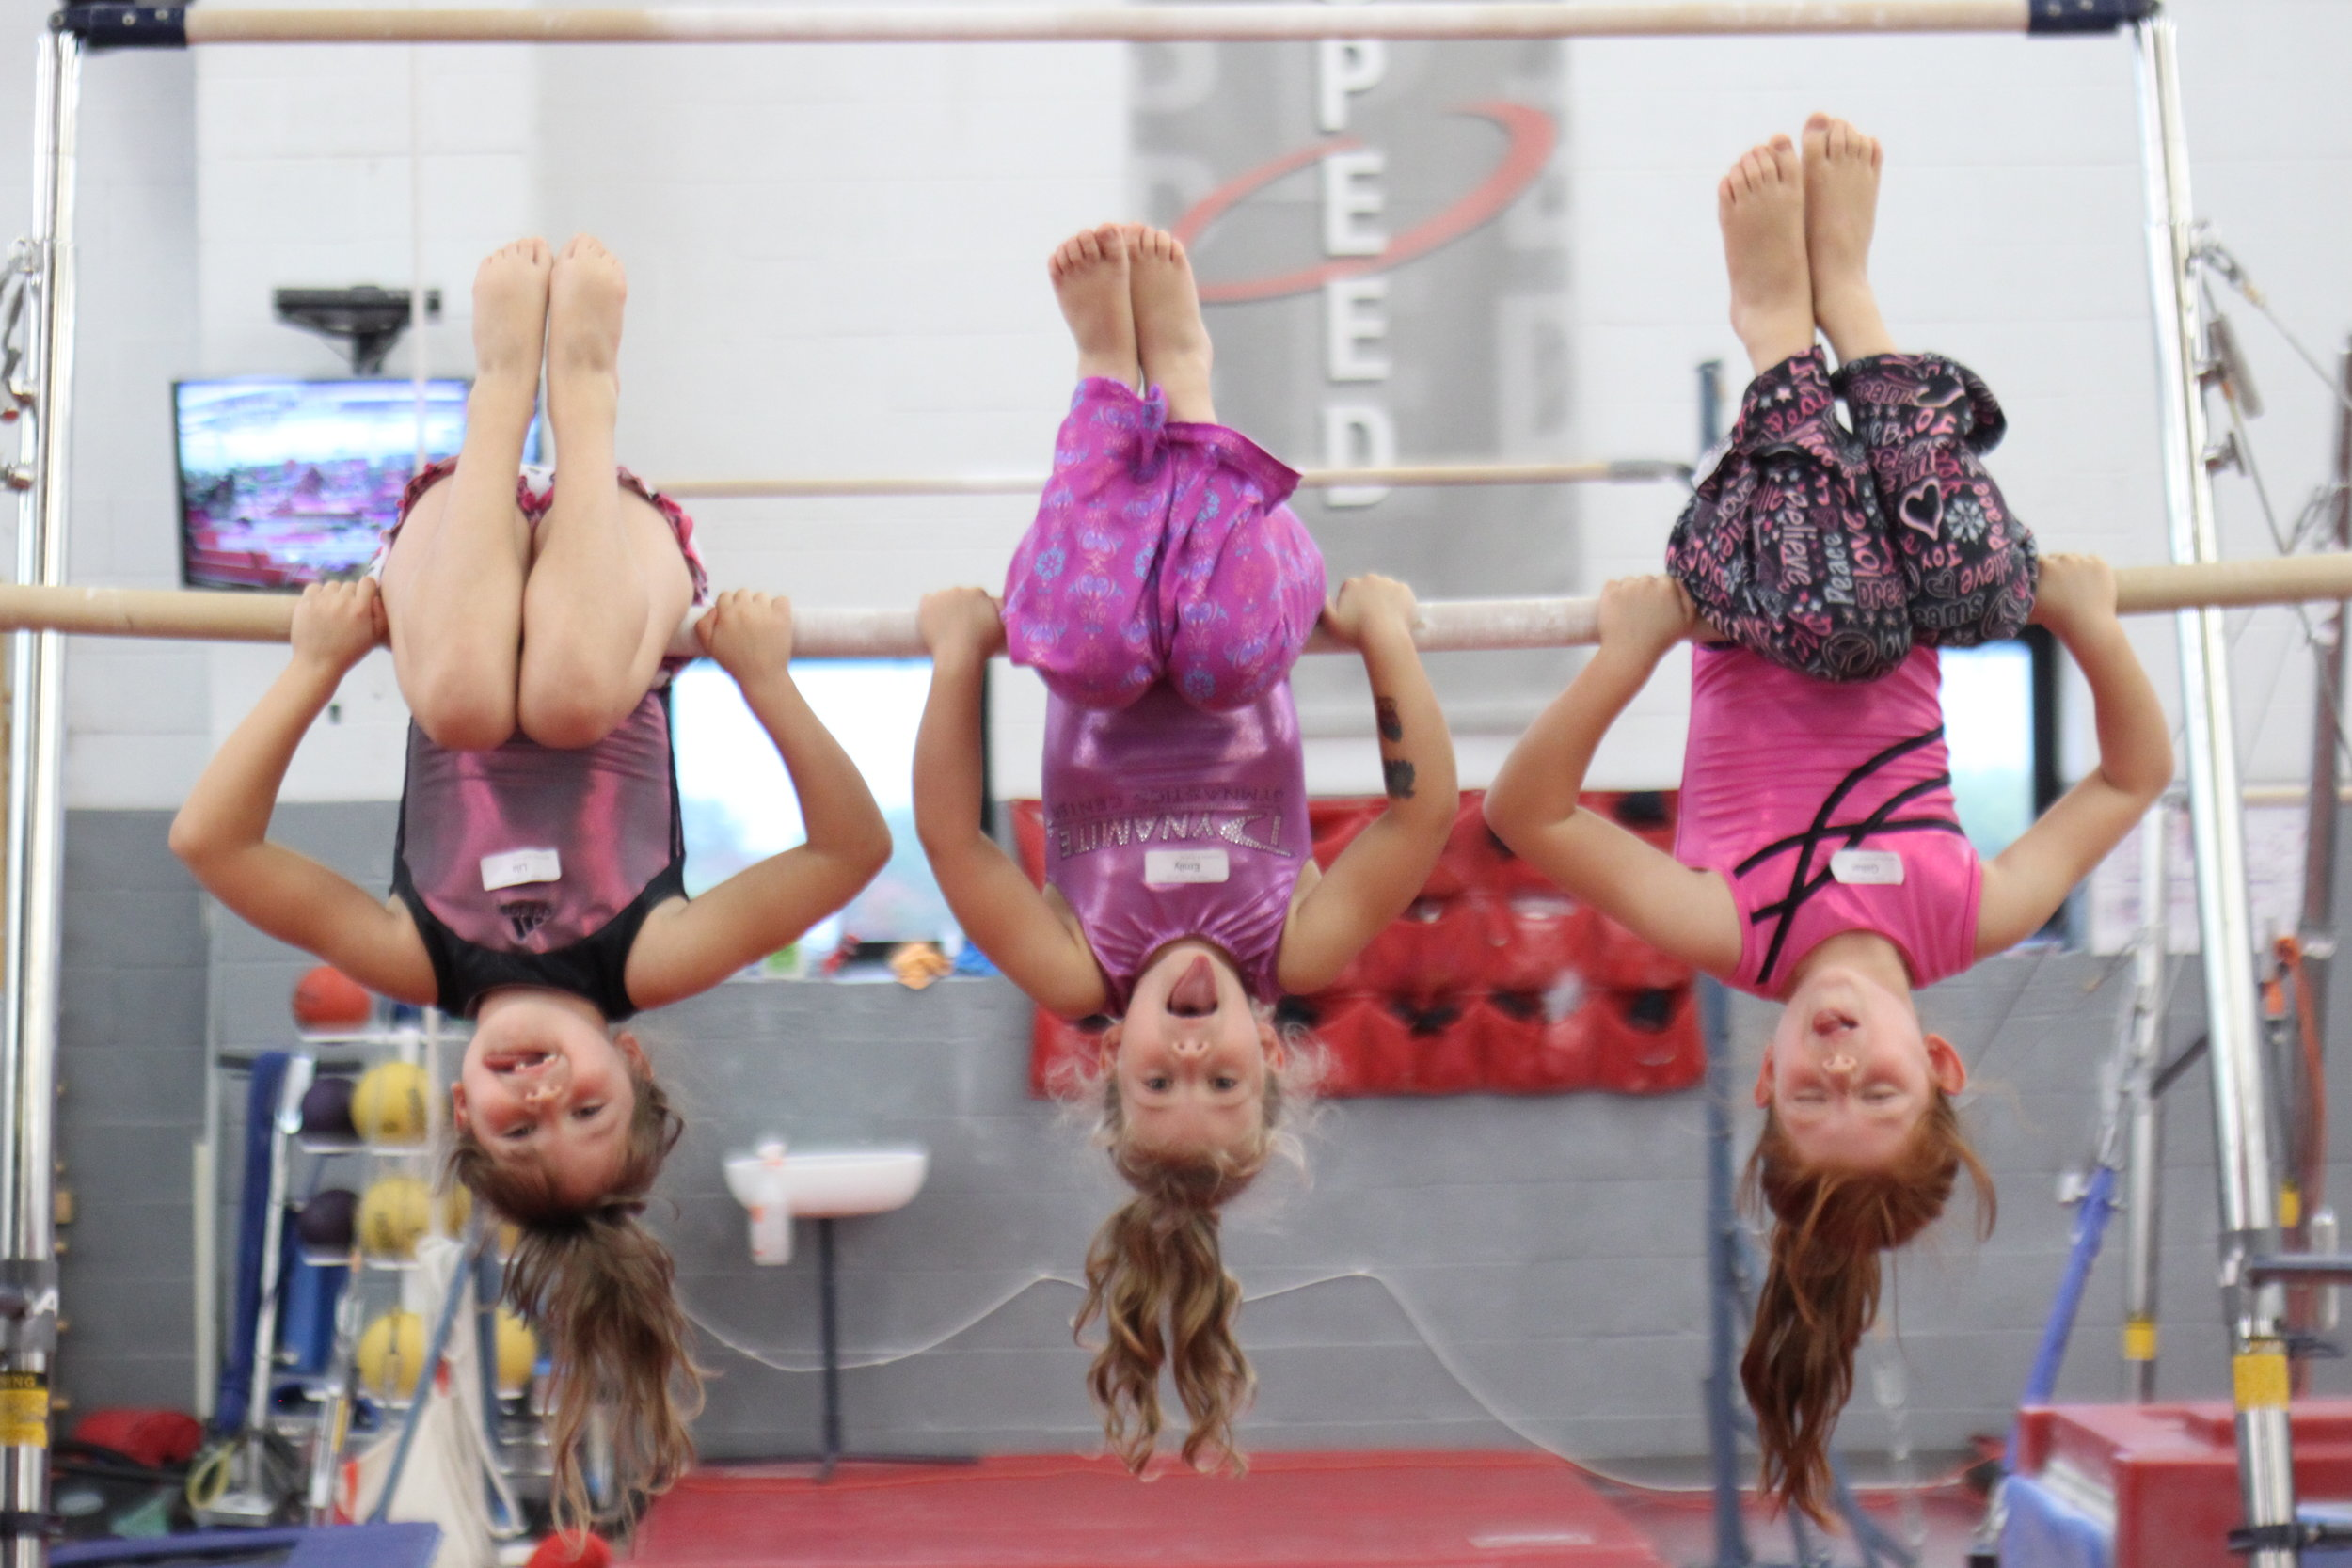 SPRING BREAK CAMP!4/17 - 4/19 & 4/22, 2019 - at DYNAMITE GYMNASTICS CENTER, THE AGILITY CENTER, BOLT PARKOUR & FREERUNNING ACADEMY, and DYNAMITE2 in Shady Grove, Md. MON - FRI, 9 AM-4PM, FULL AND HALF DAY SPOTS AVAILABLE, click on the gym's name and learn about each of our camps!